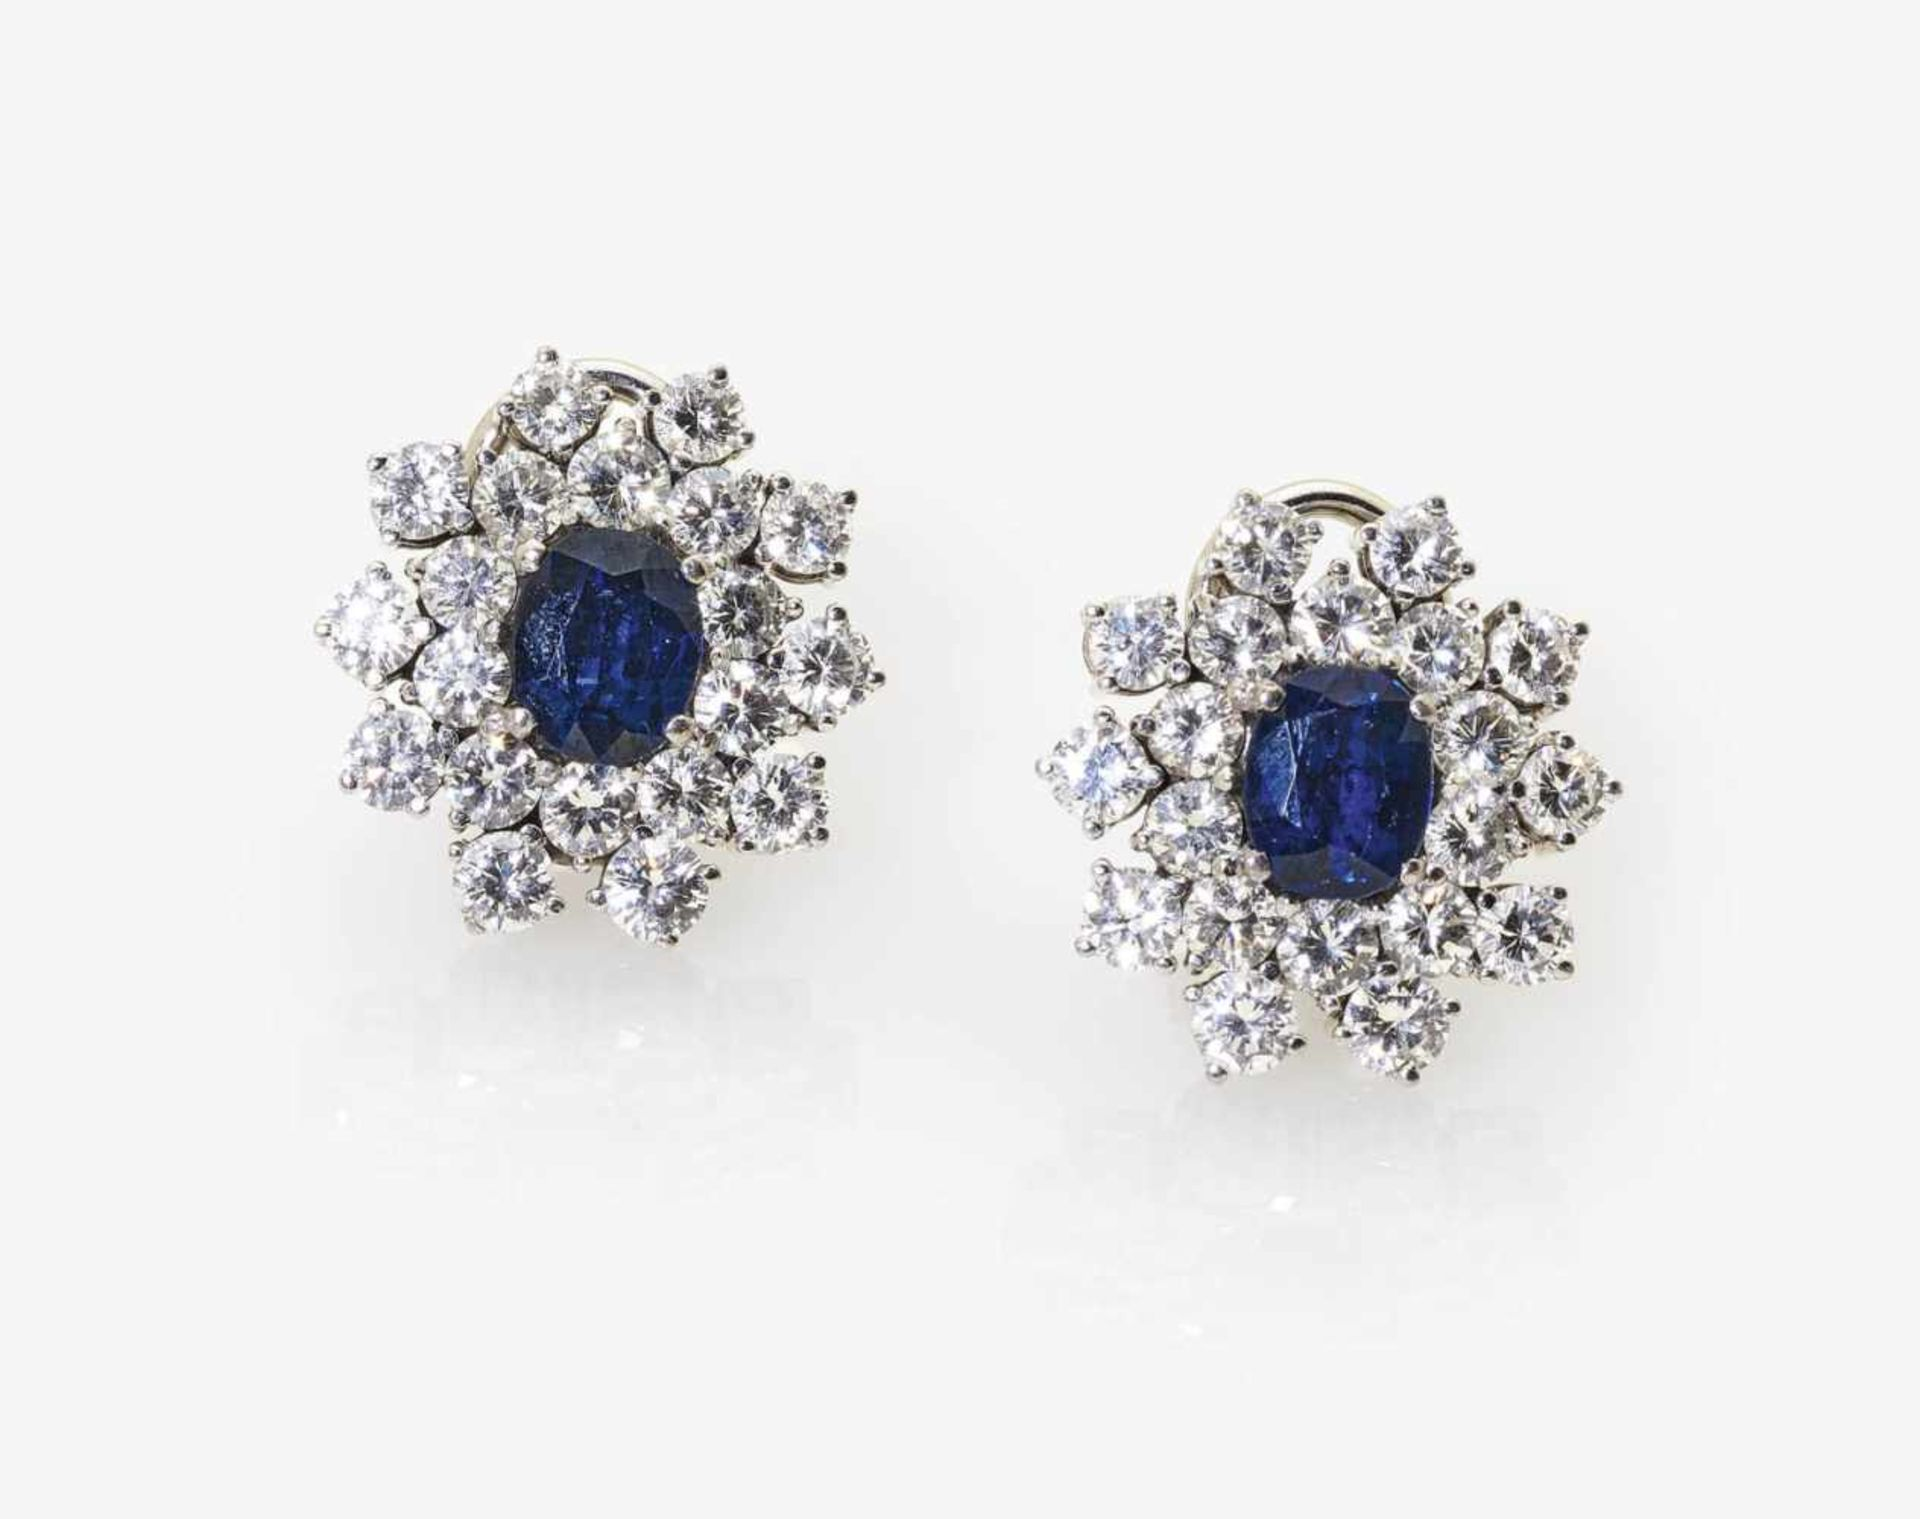 Los 1037 - A Pair of Diamond and Sapphire Ear Studs